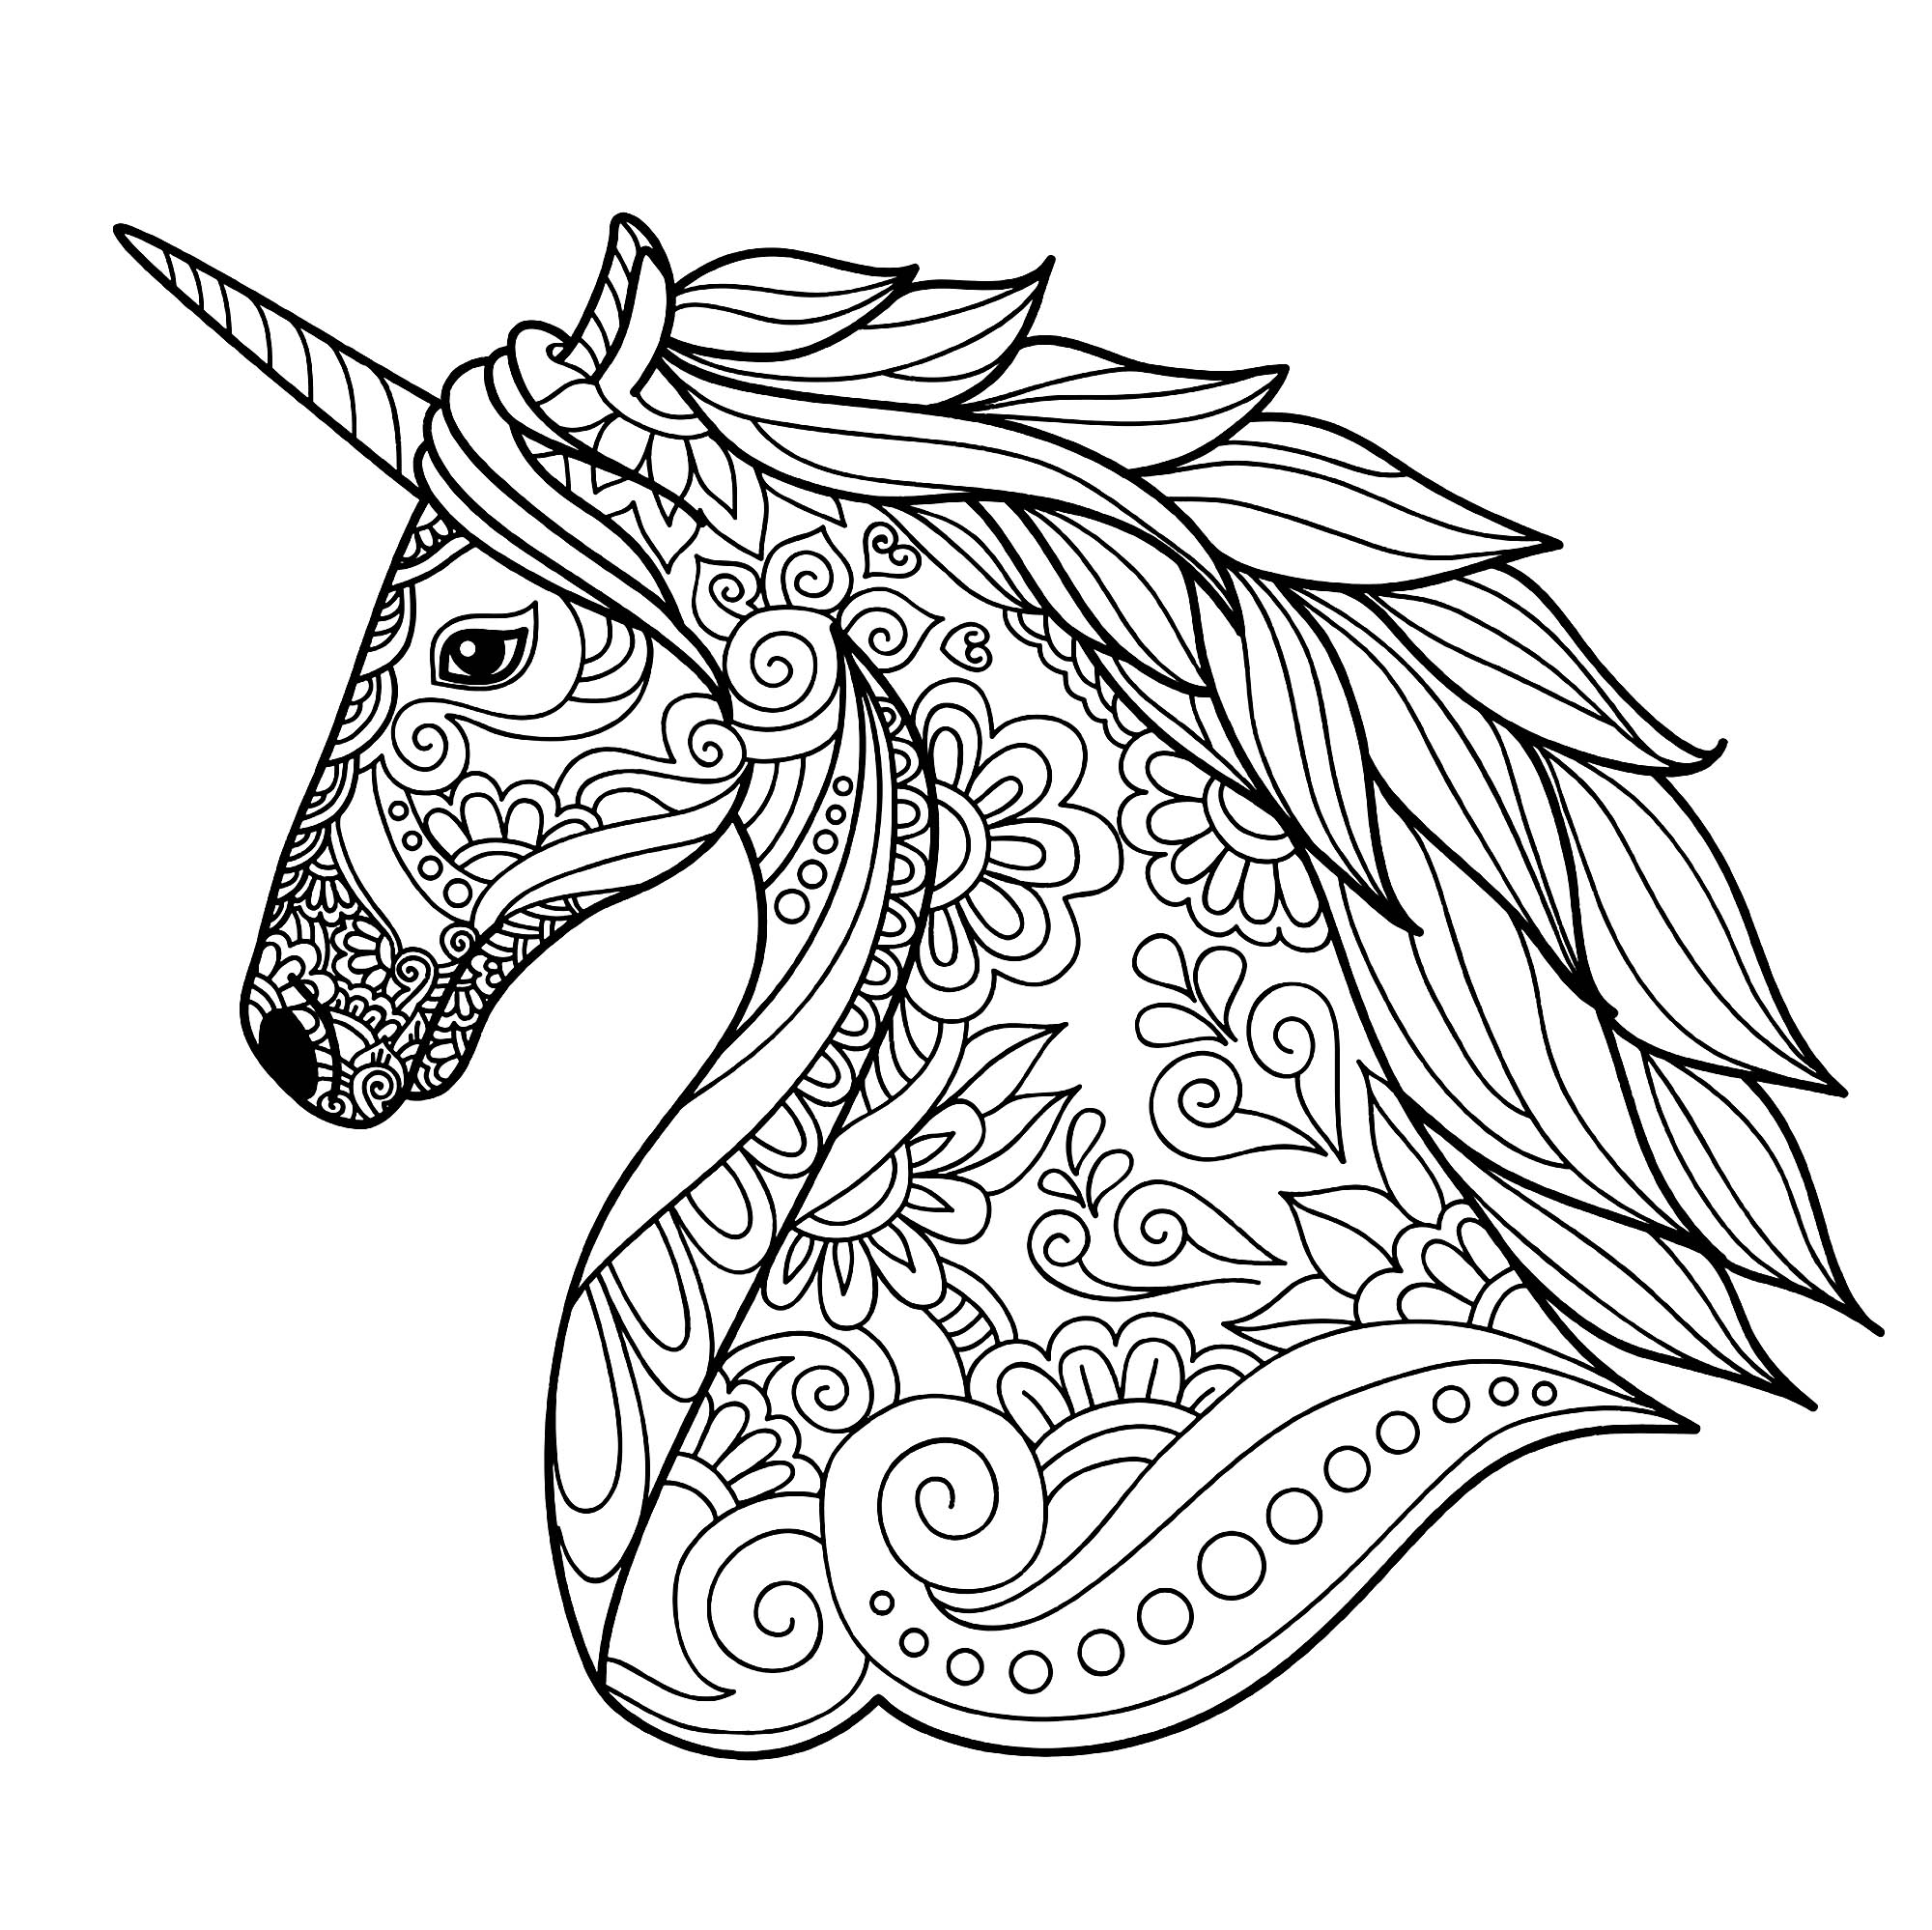 Zen Unicorn Head Coloring Page for Adults